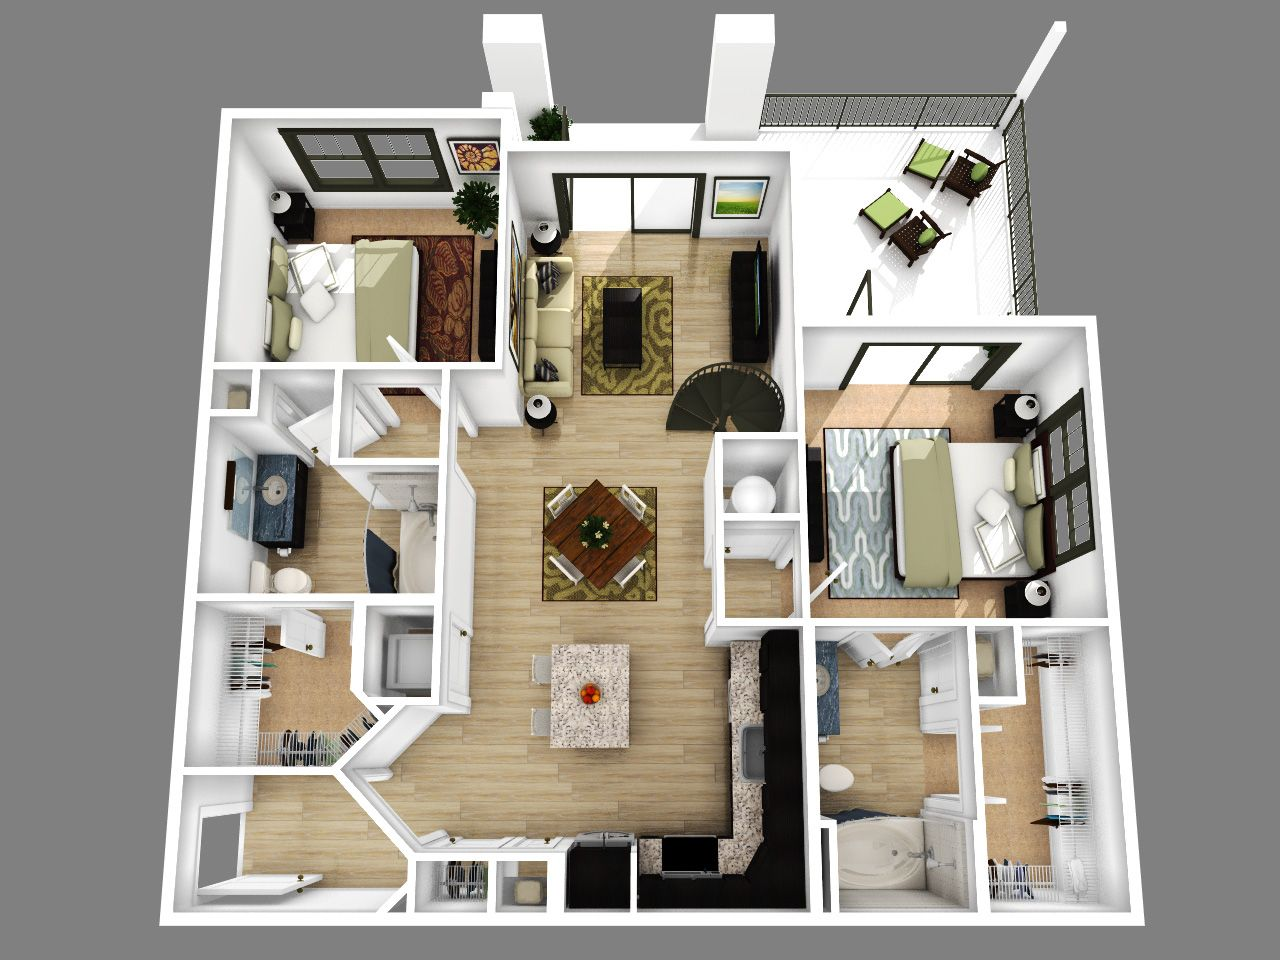 Small 2 Bedroom Apartment Floor Plan Google Search 2 Bedroom Apartment Floor Plan Apartment Floor Plans Apartment Layout